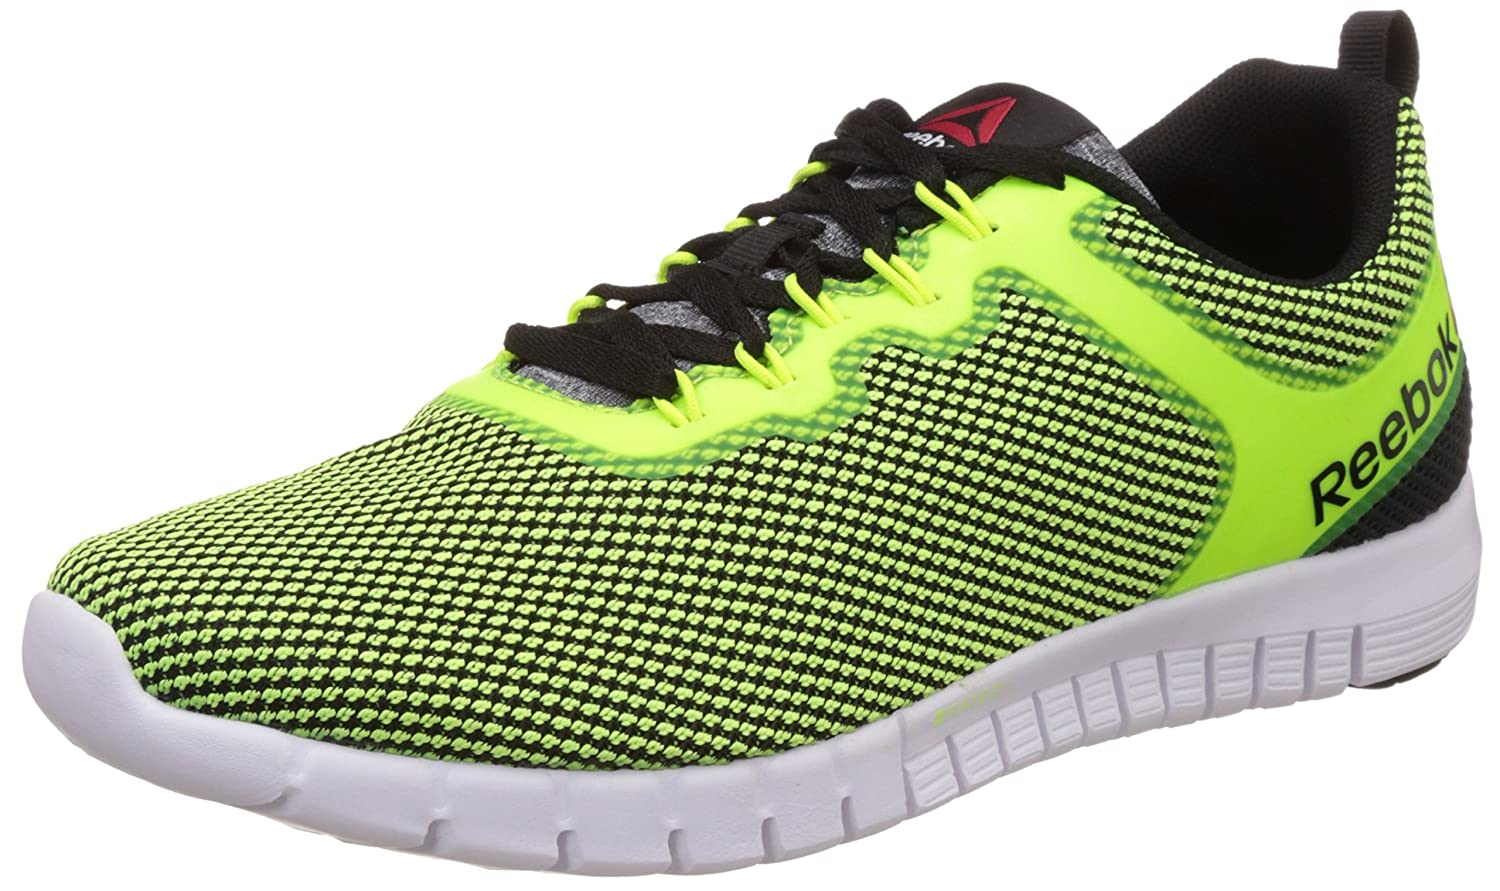 Reebok Zquick Lite, Men's Running Shoes, Solar Yellow/Black/White, 10.5 UK:  Amazon.co.uk: Shoes & Bags